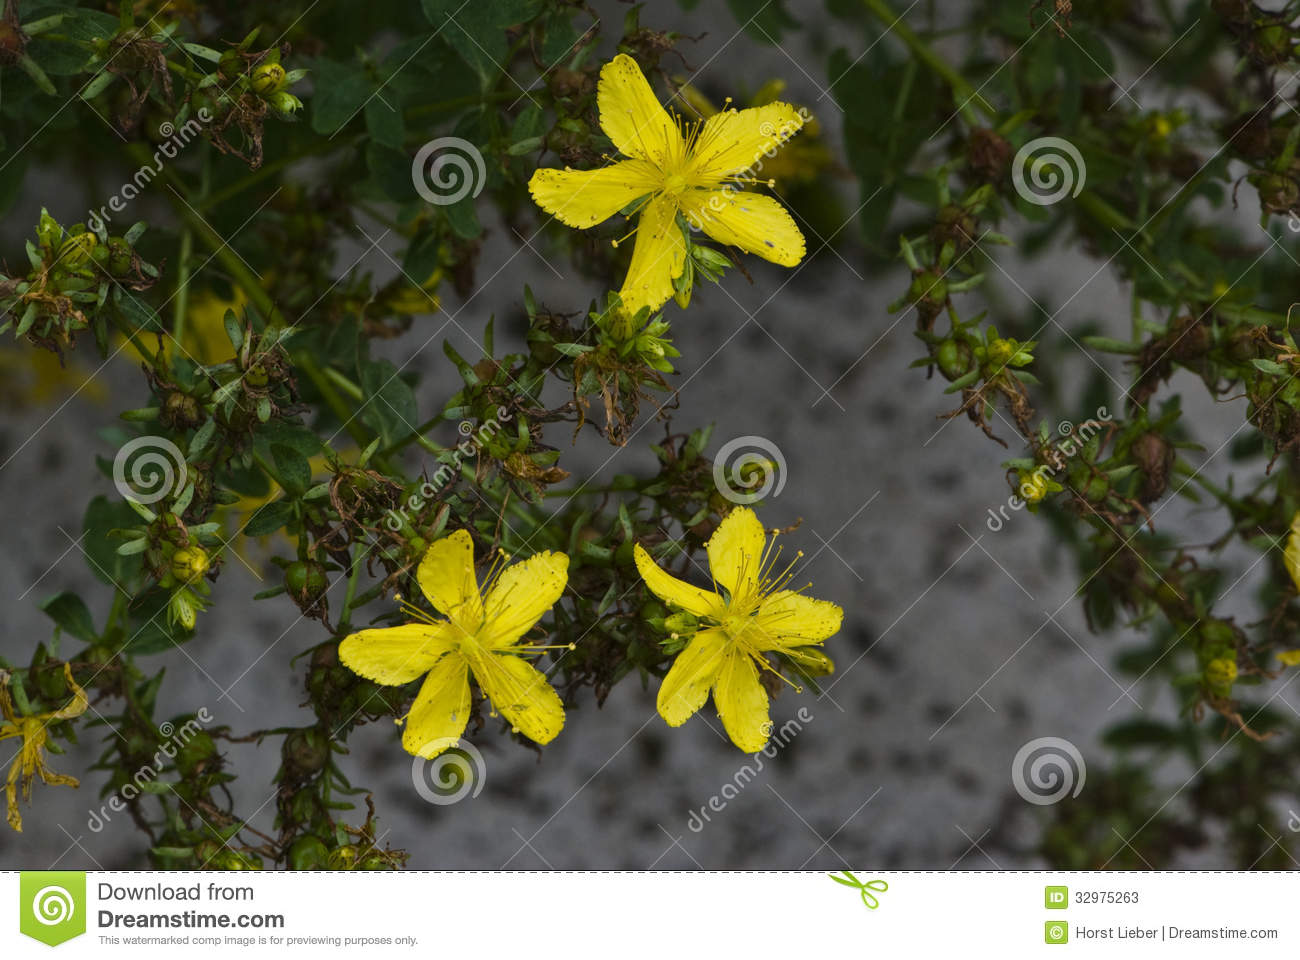 The medical uses of the hypericum perforatum stjohns wort